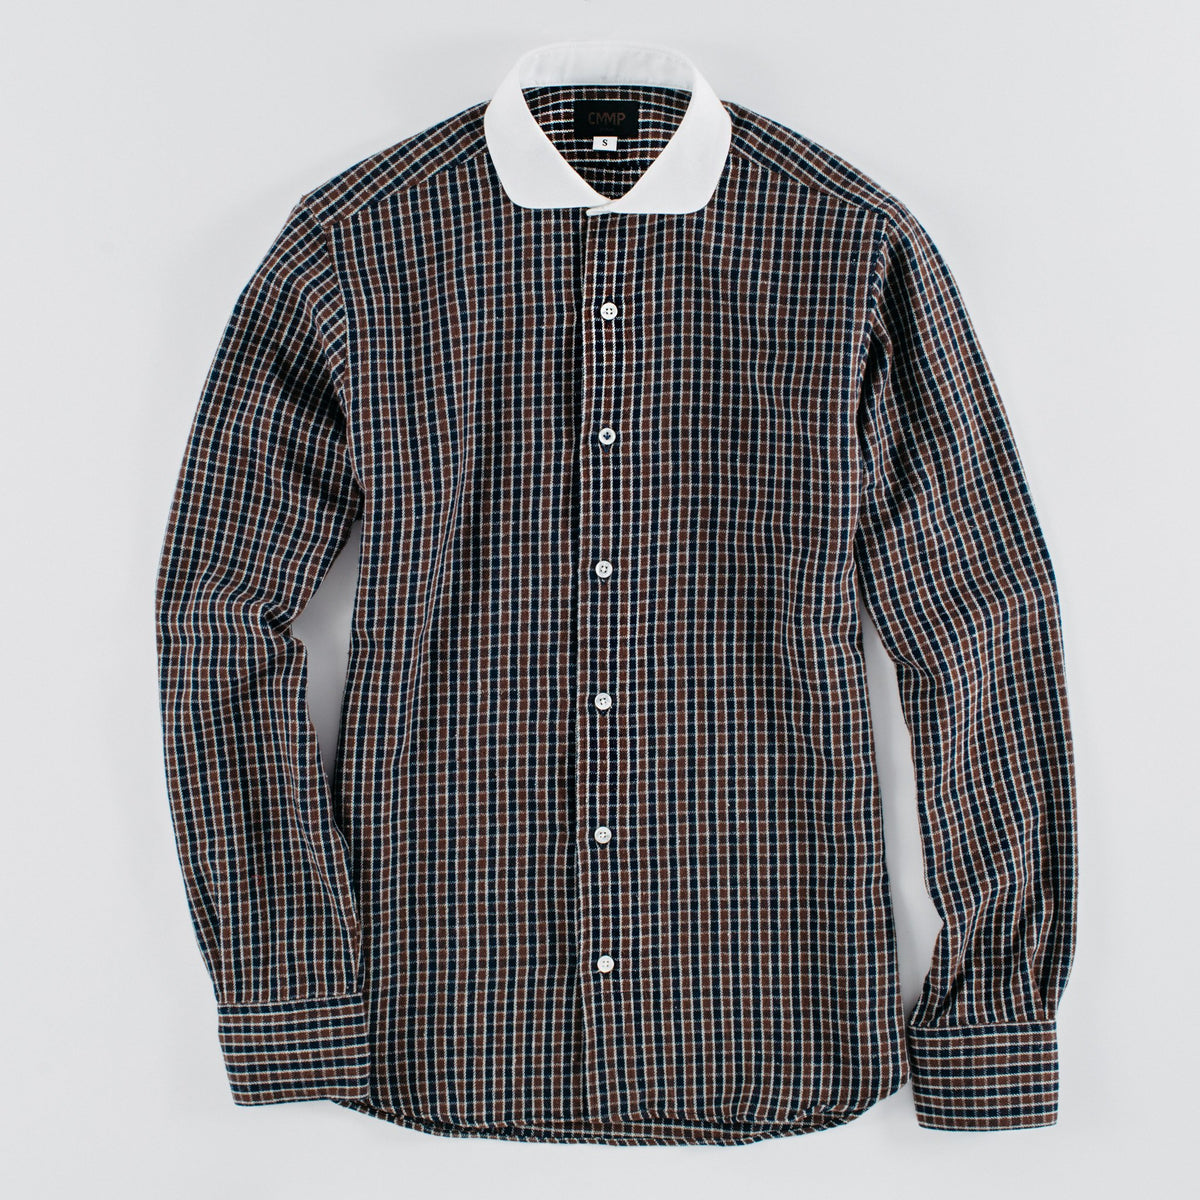 Blue / Brown Gingham Shirt